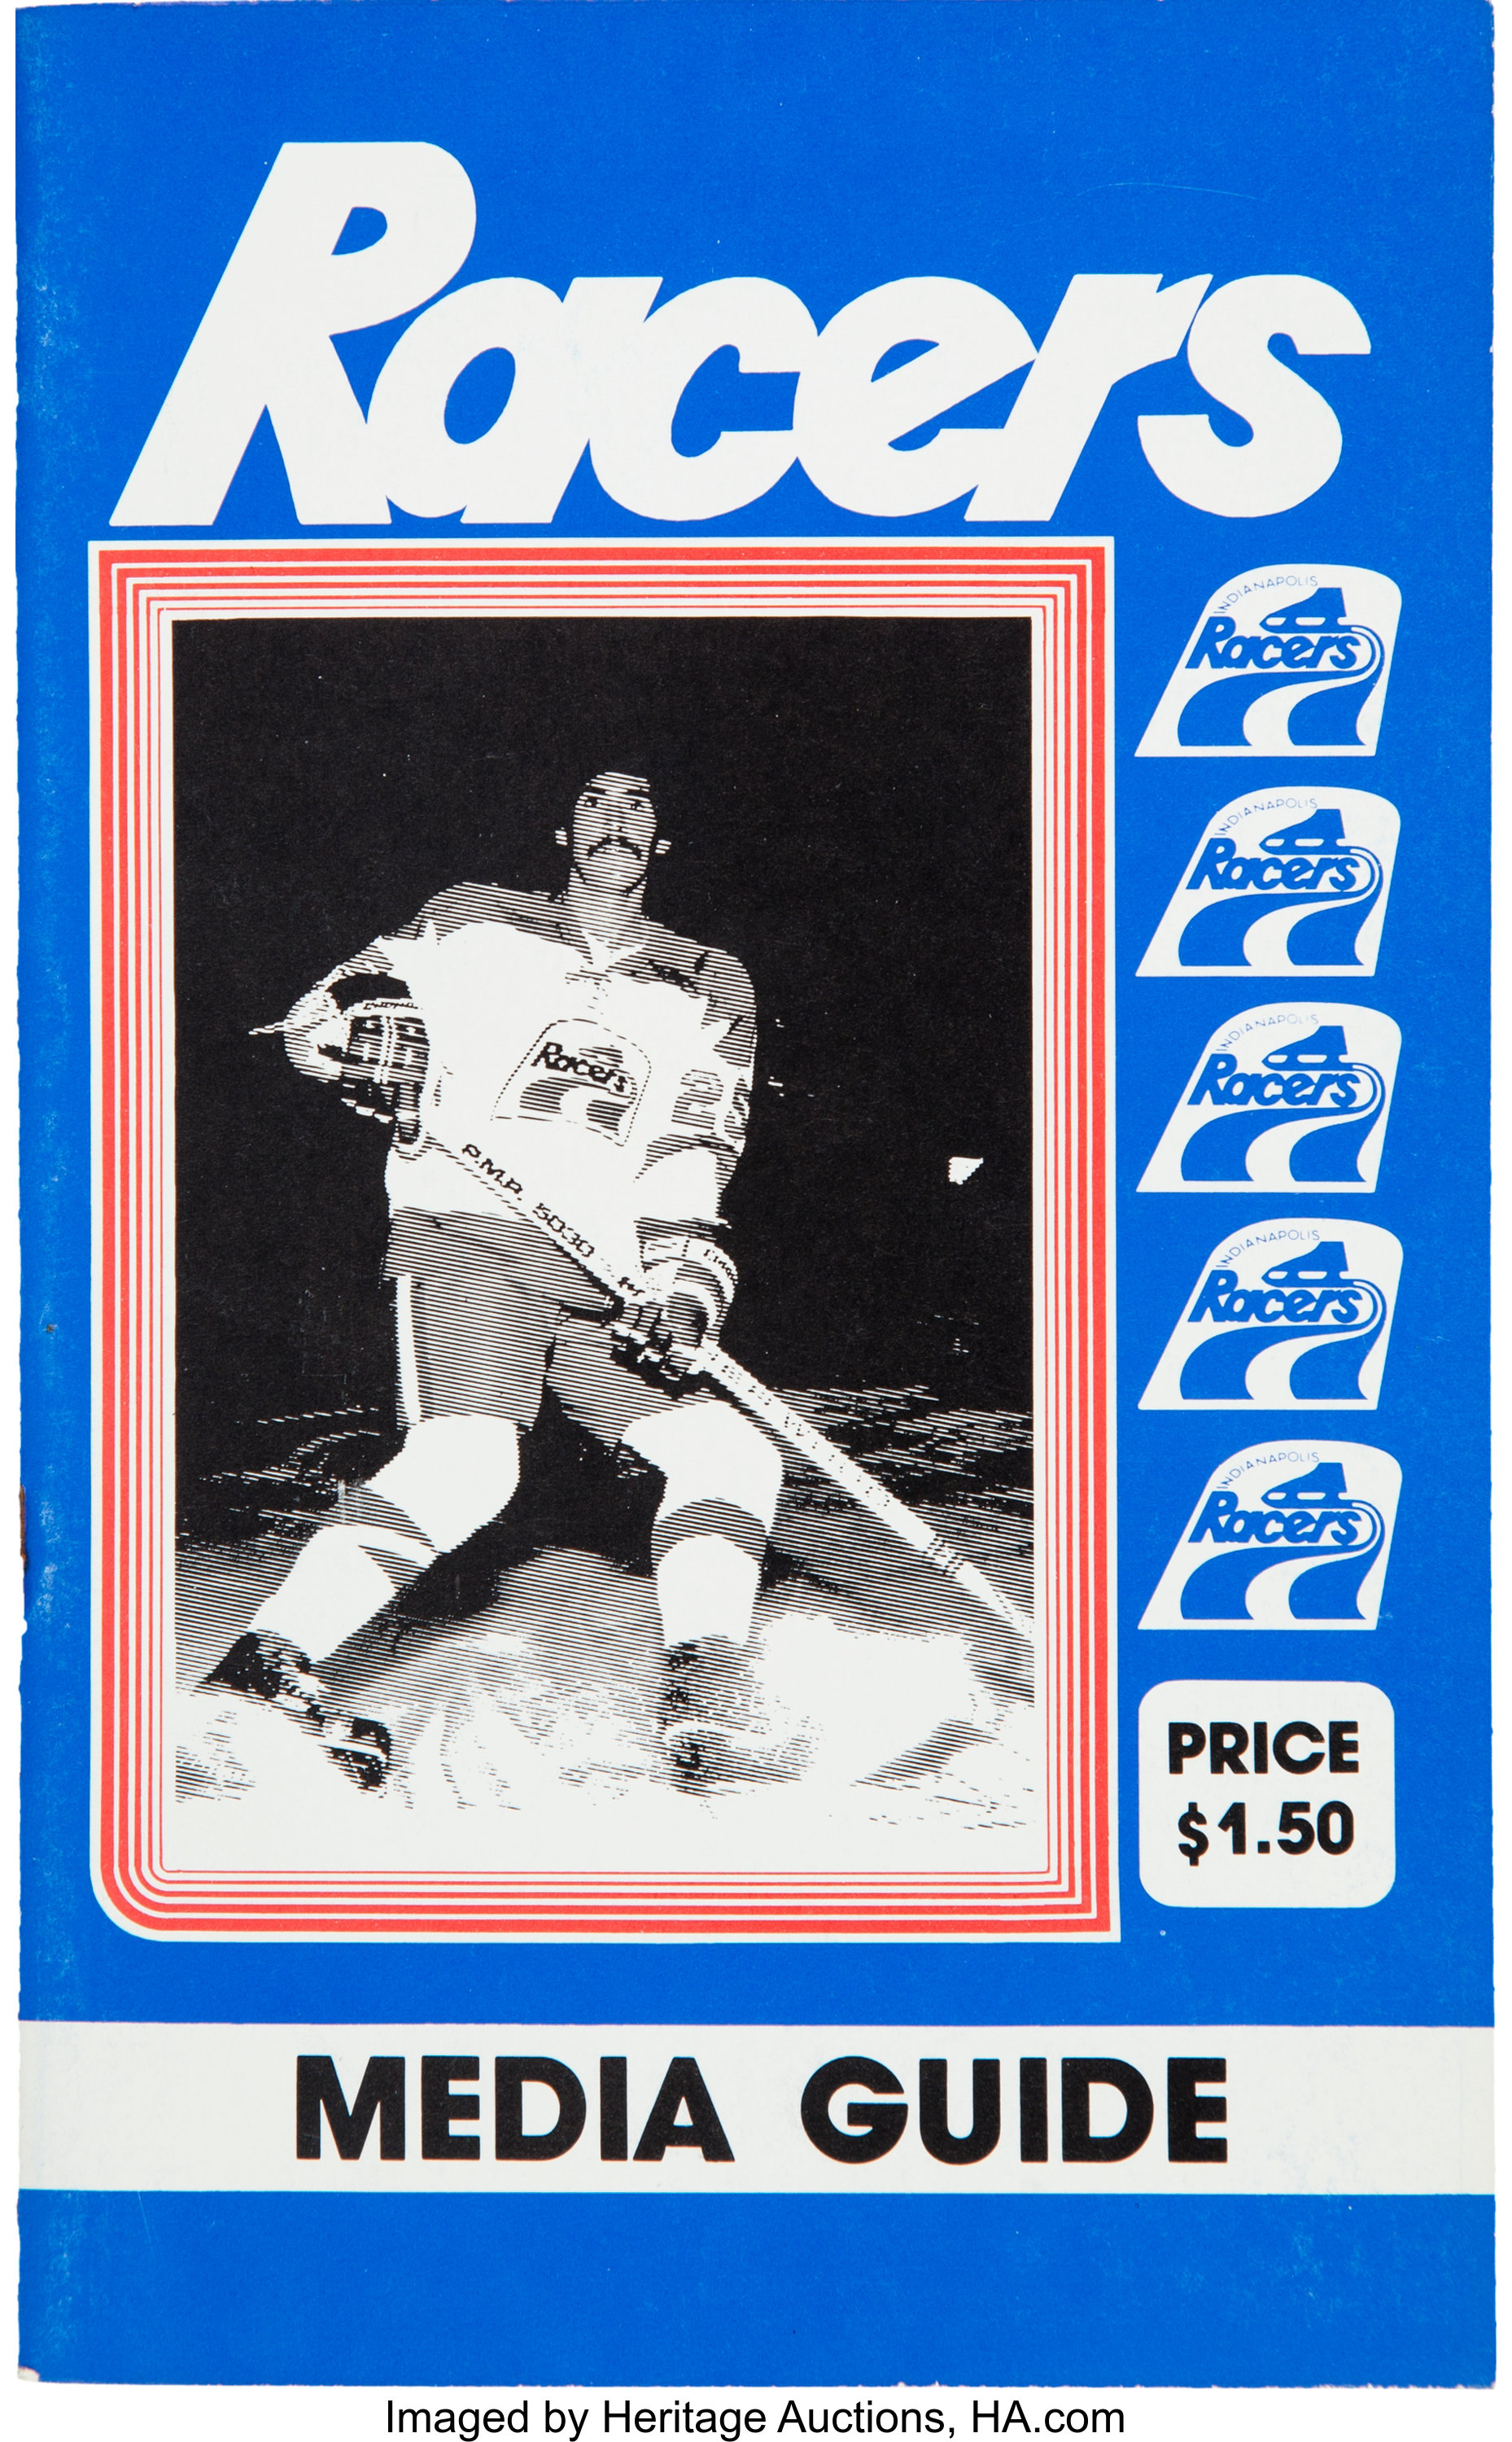 best service 5f758 d30be 1978-79 Indianapolis Racers Media Guide - From Wayne ...